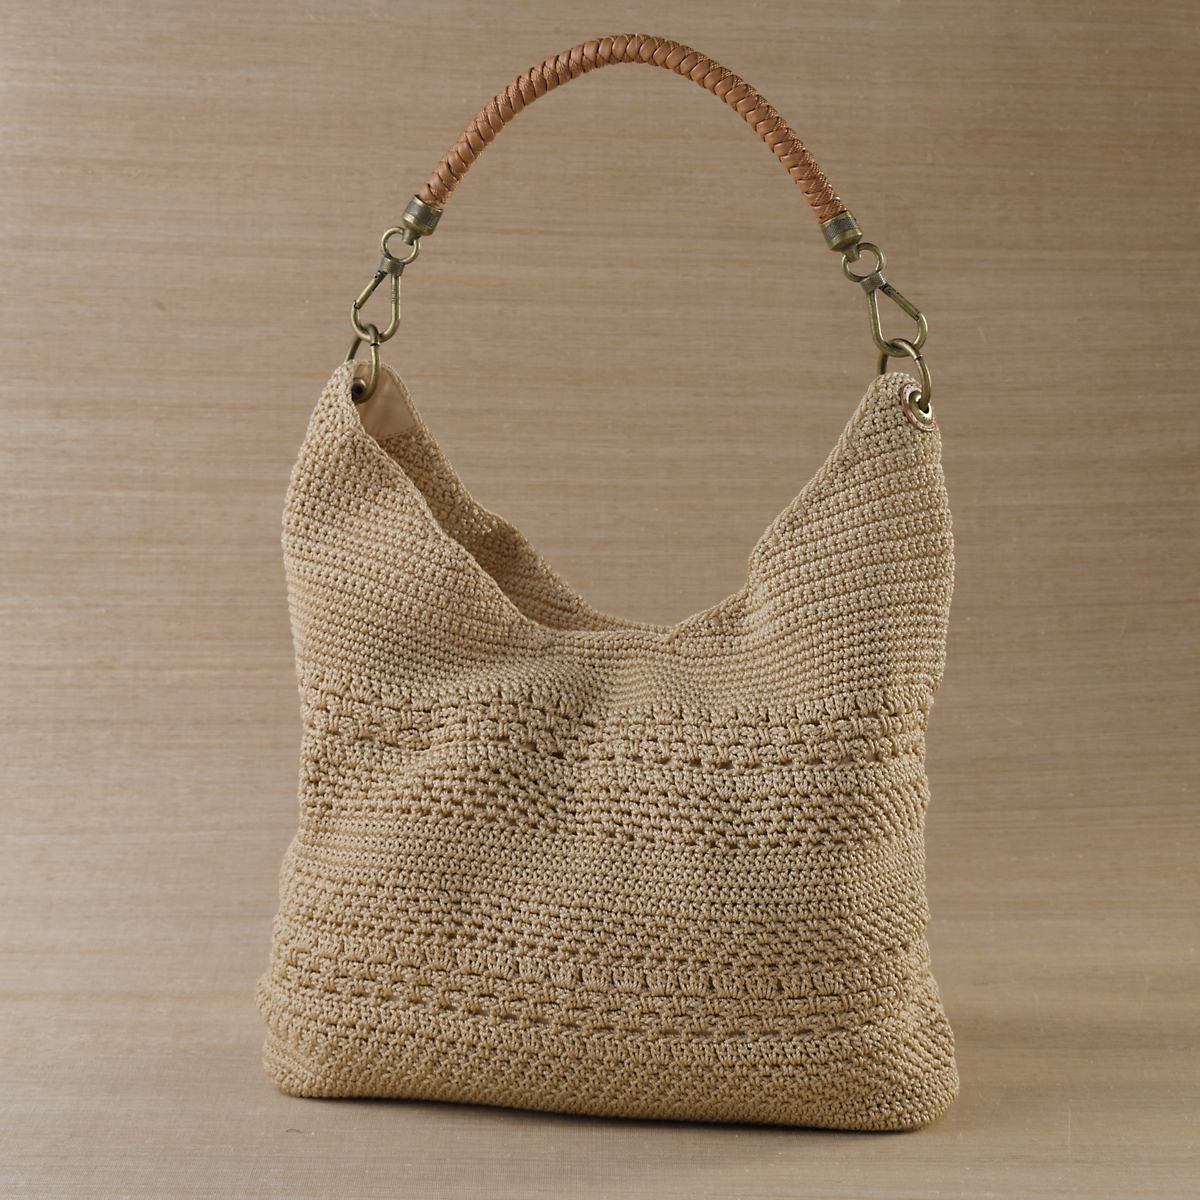 Crochet Bucket Bag : ... accessories accessories handbags rolling bags crochet bucket bag